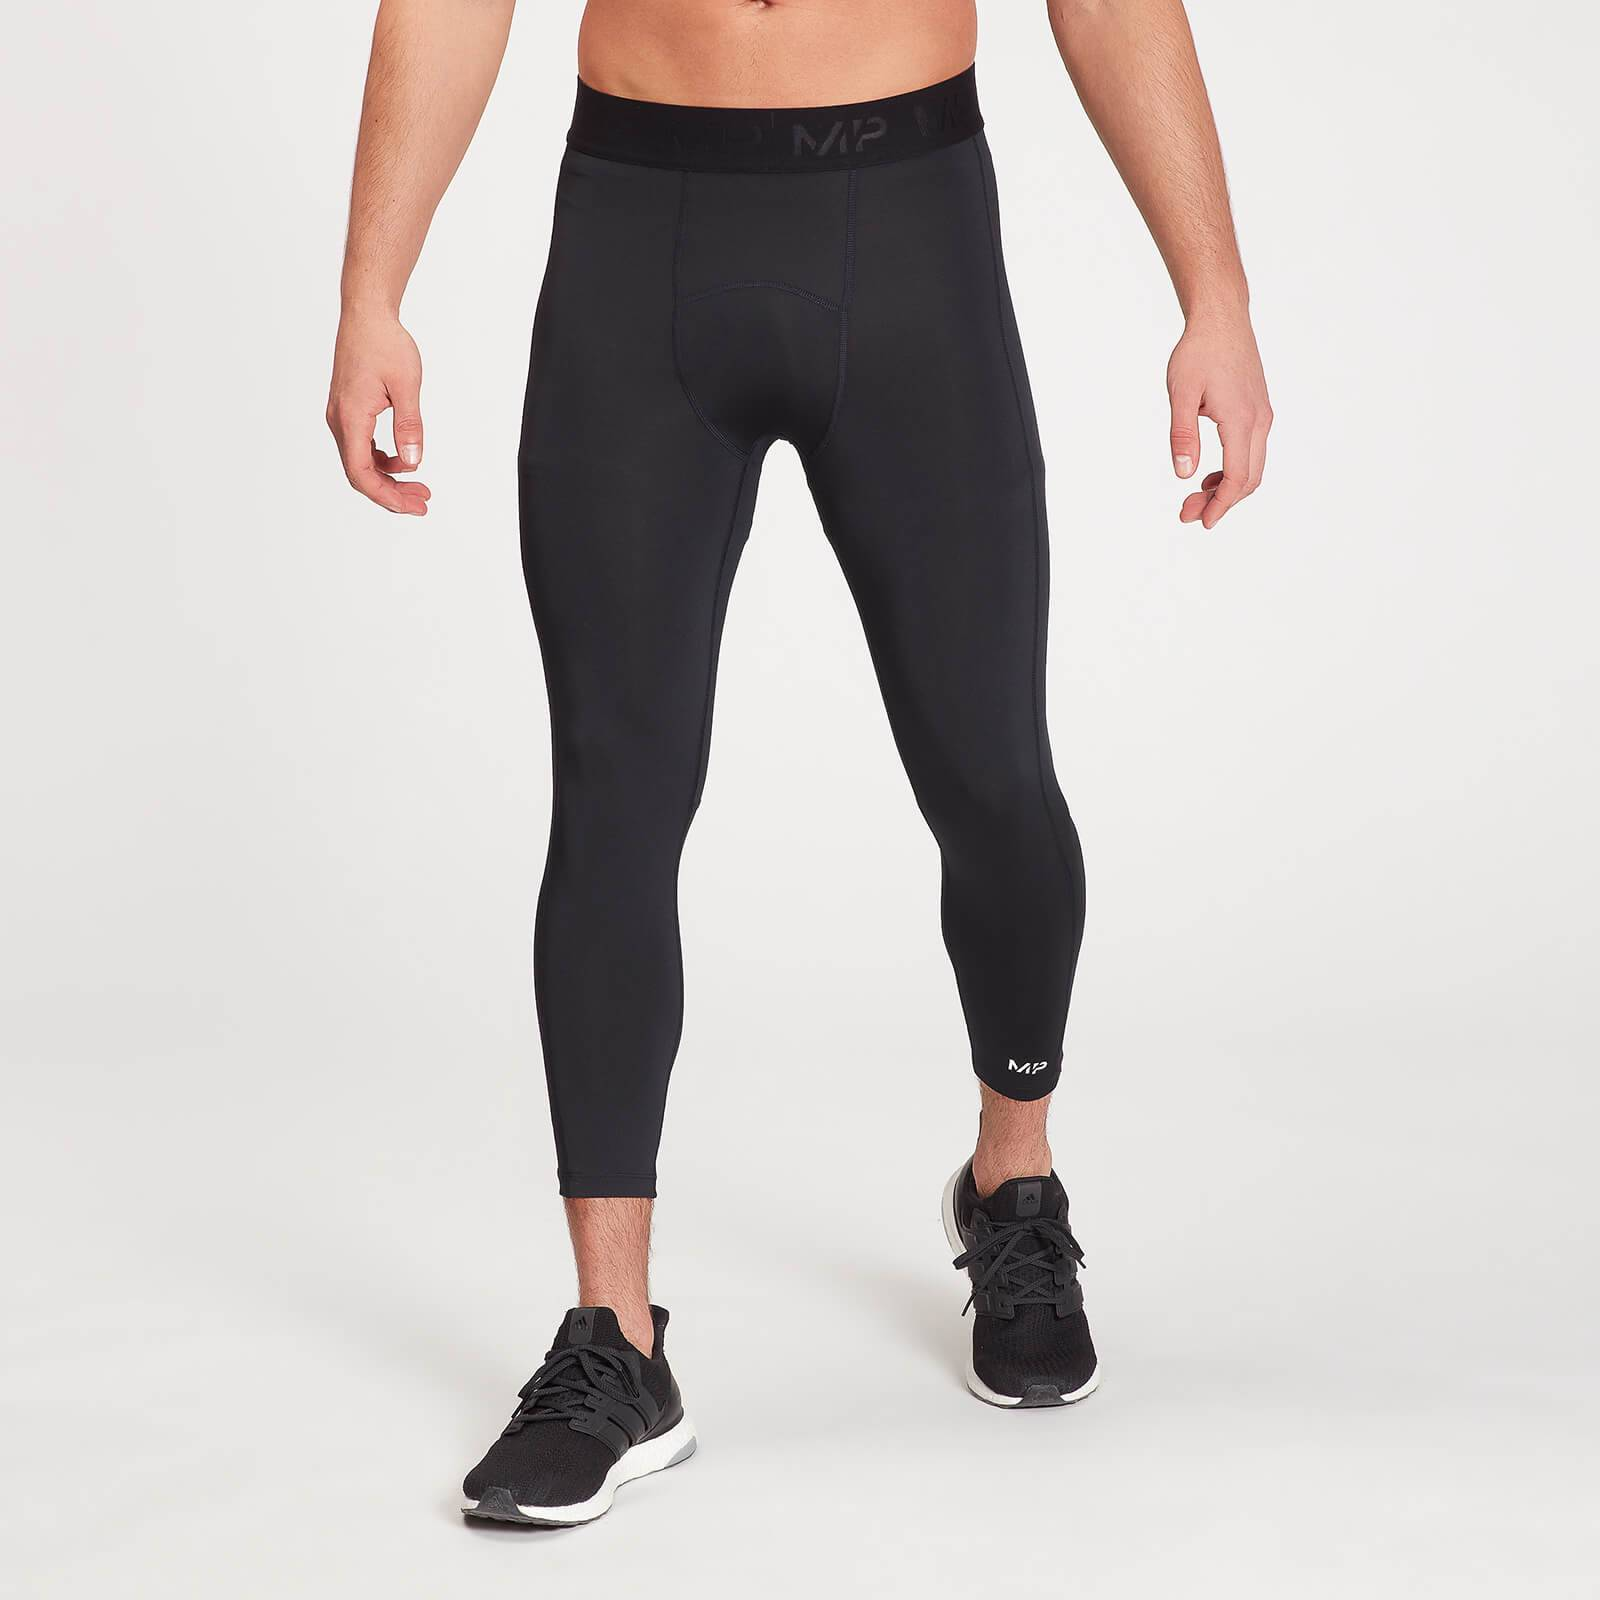 Mp Leggings sportivi attillati a 3/4  Essentials Base da uomo - Neri - XXL